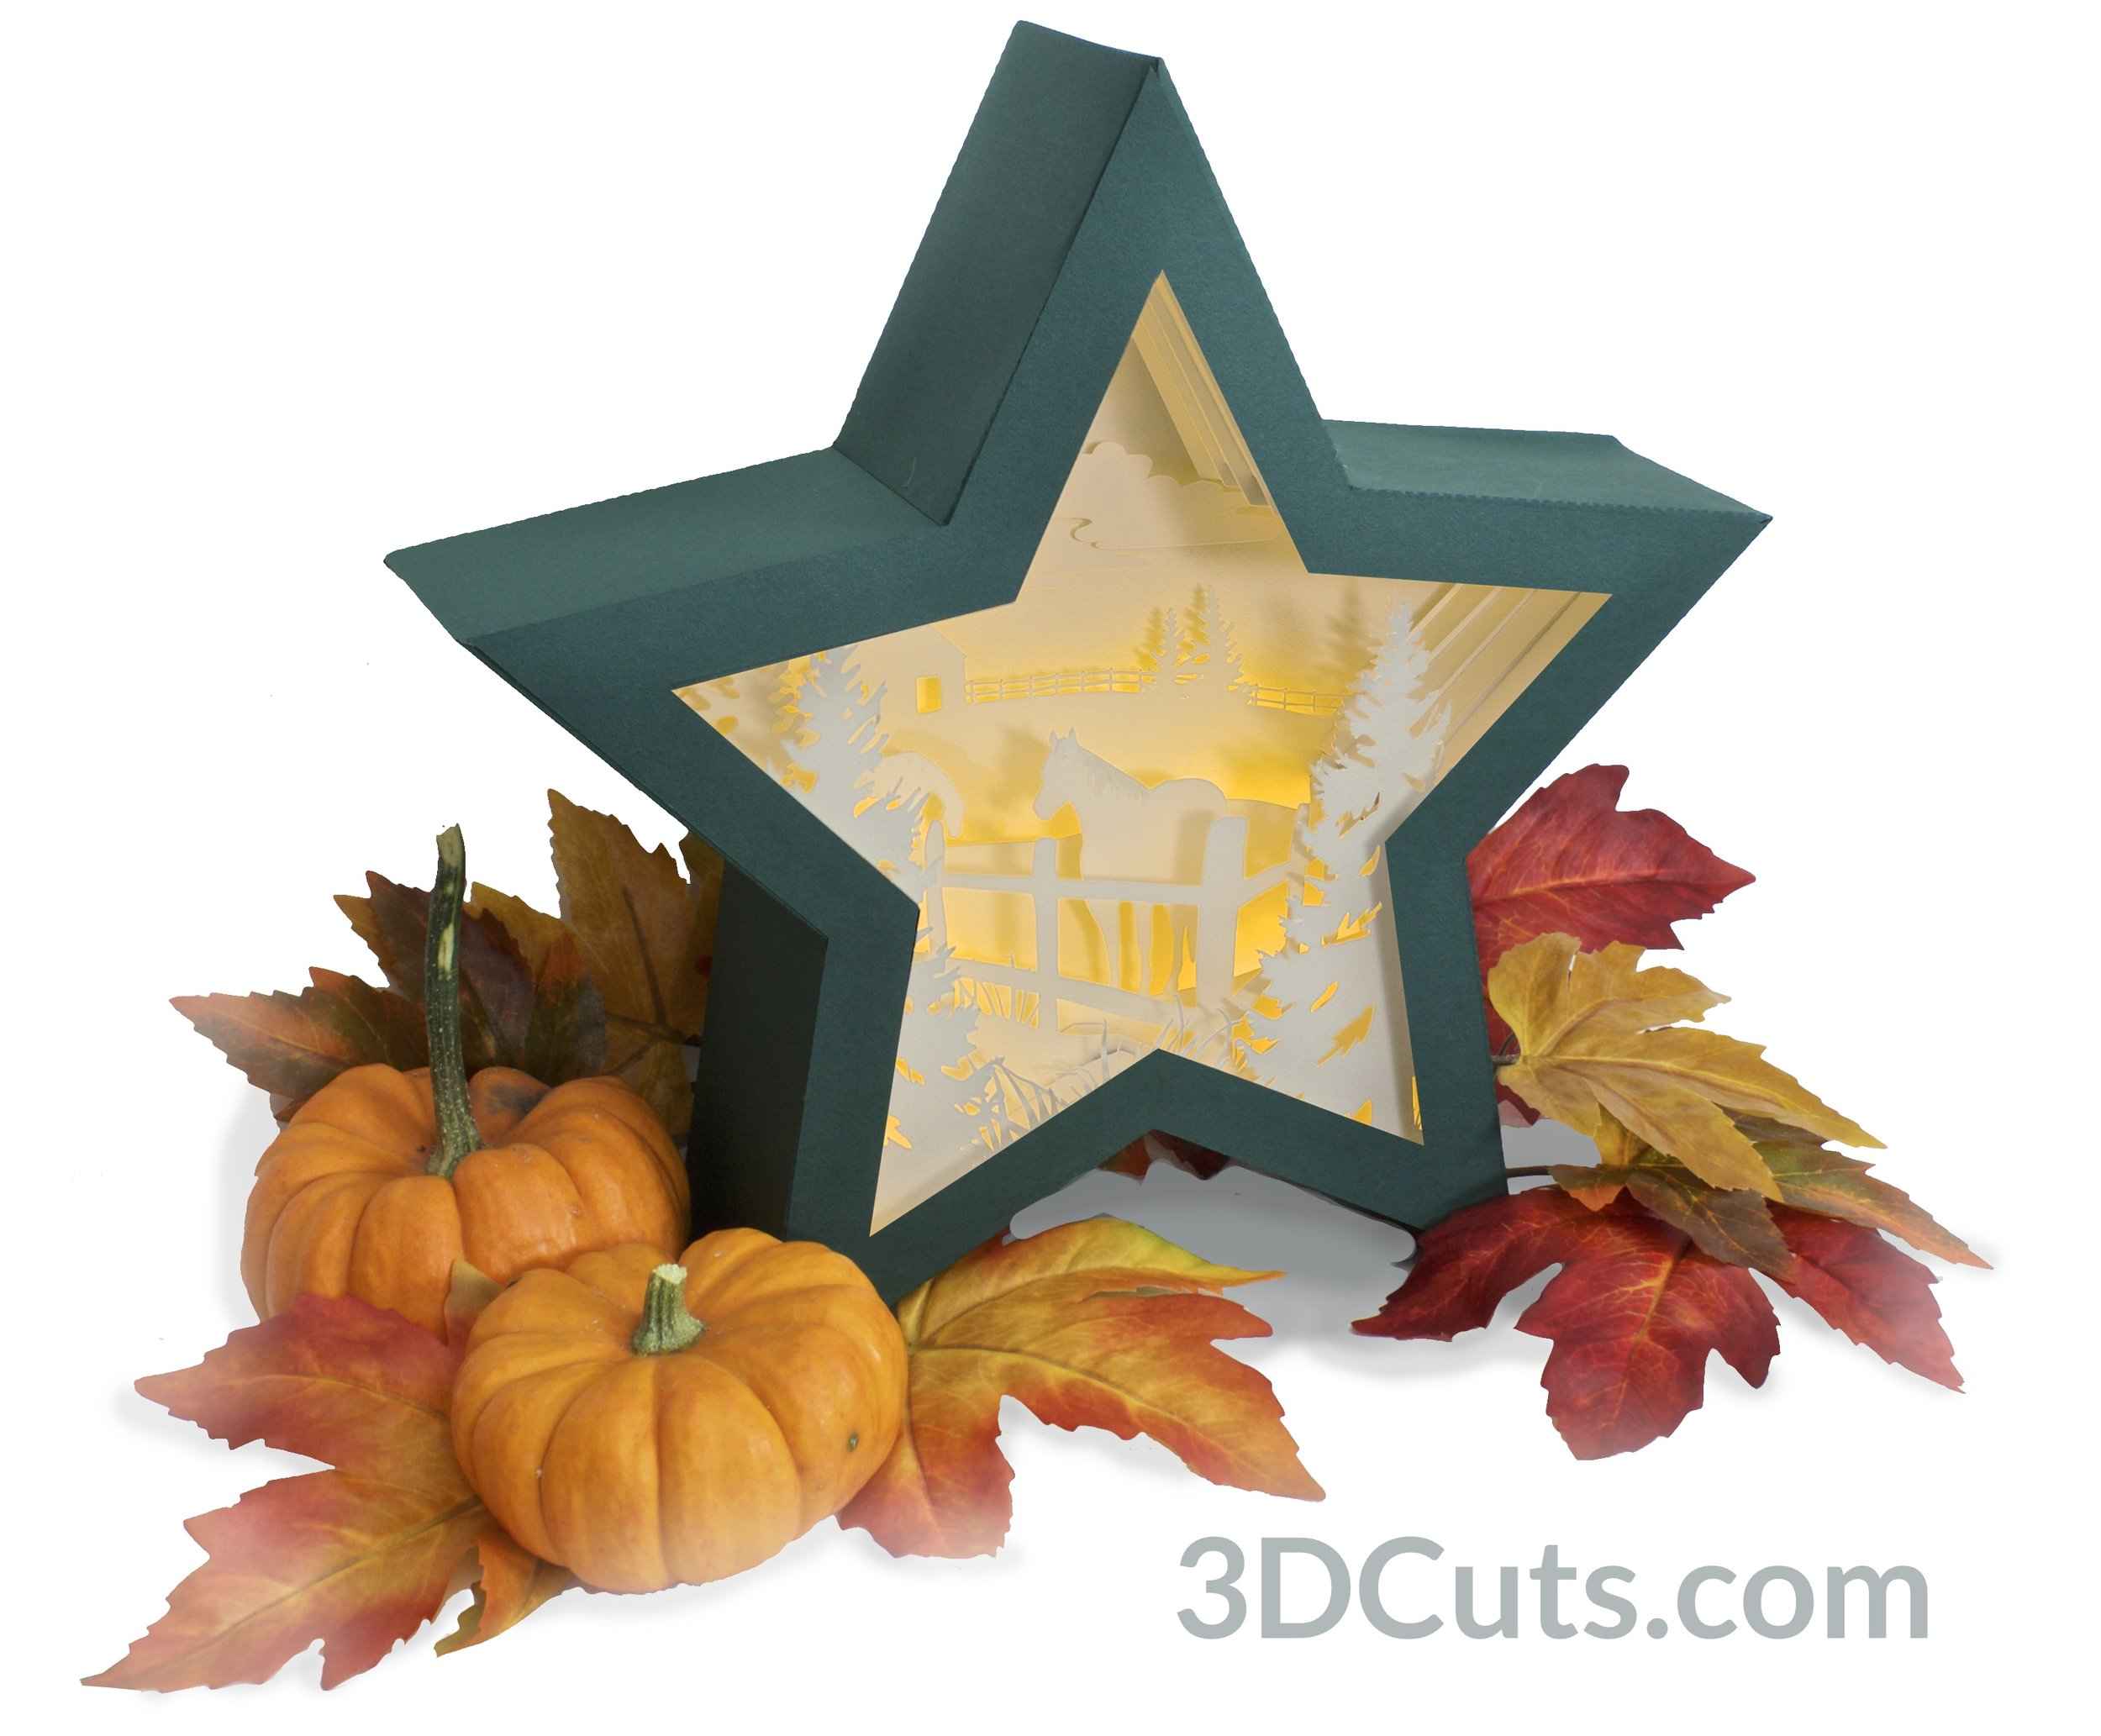 Stunning 3D illuminated shadow box by Marji Roy of 3dcuts.com. SVG, PDF, PNG and DXF cutting files and a complete tutorial available.